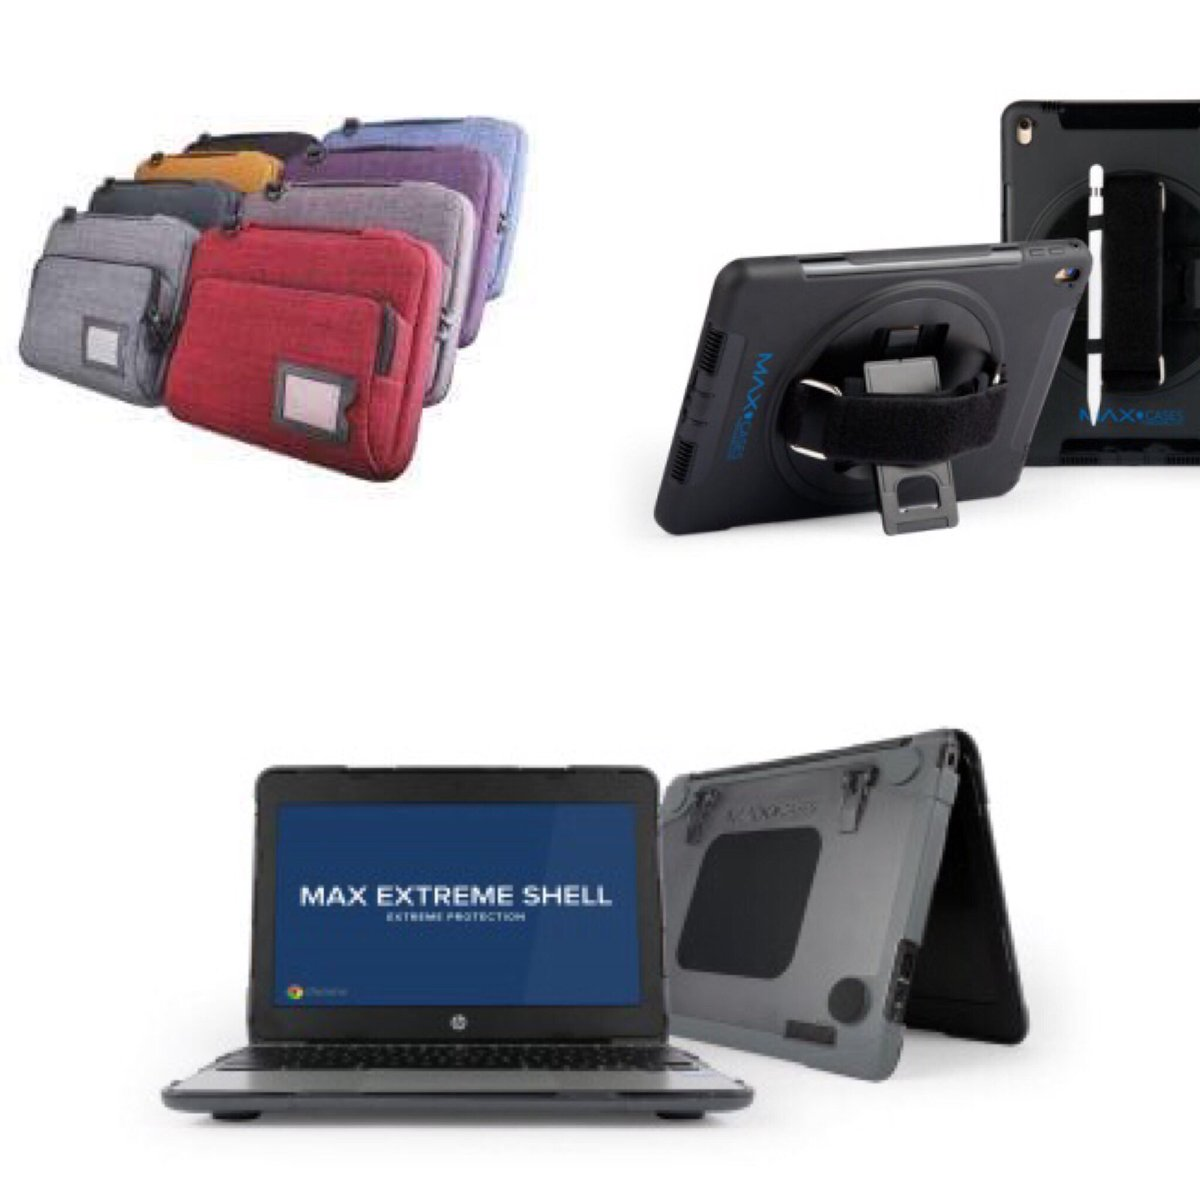 Looking to protect your #classroom or #business mobile devices? We have you covered! Great selection of protective cases and FREE logo printing from #Nutkase Call 866 926 1669 😊💻 #encoredataproducts #education #purchasing #procurement #STEMDirector #curriculumdirector #maxcases https://t.co/ucIzIXt7kB